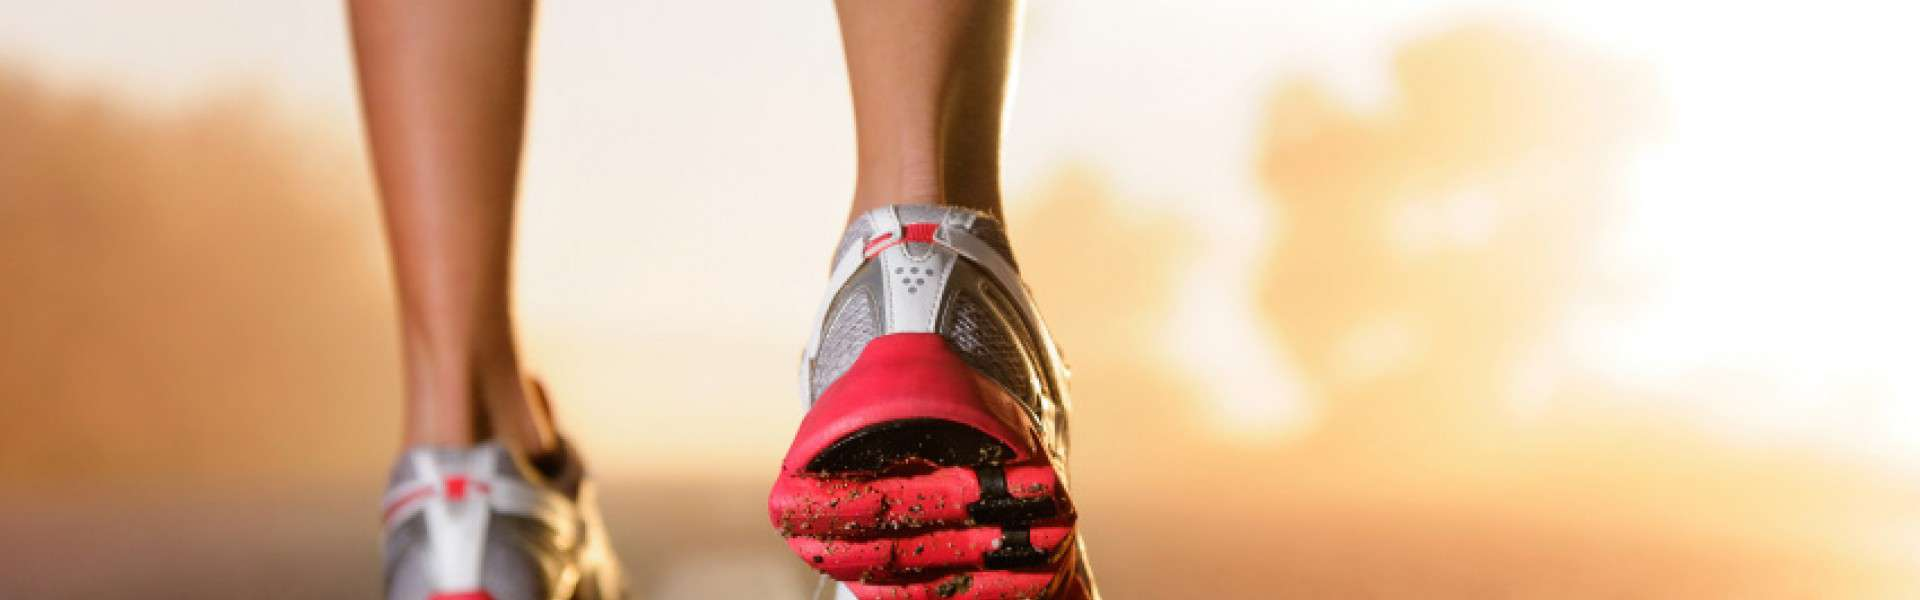 Best Running Shoes for Women 2018 – Ultimate Buyer's Guide